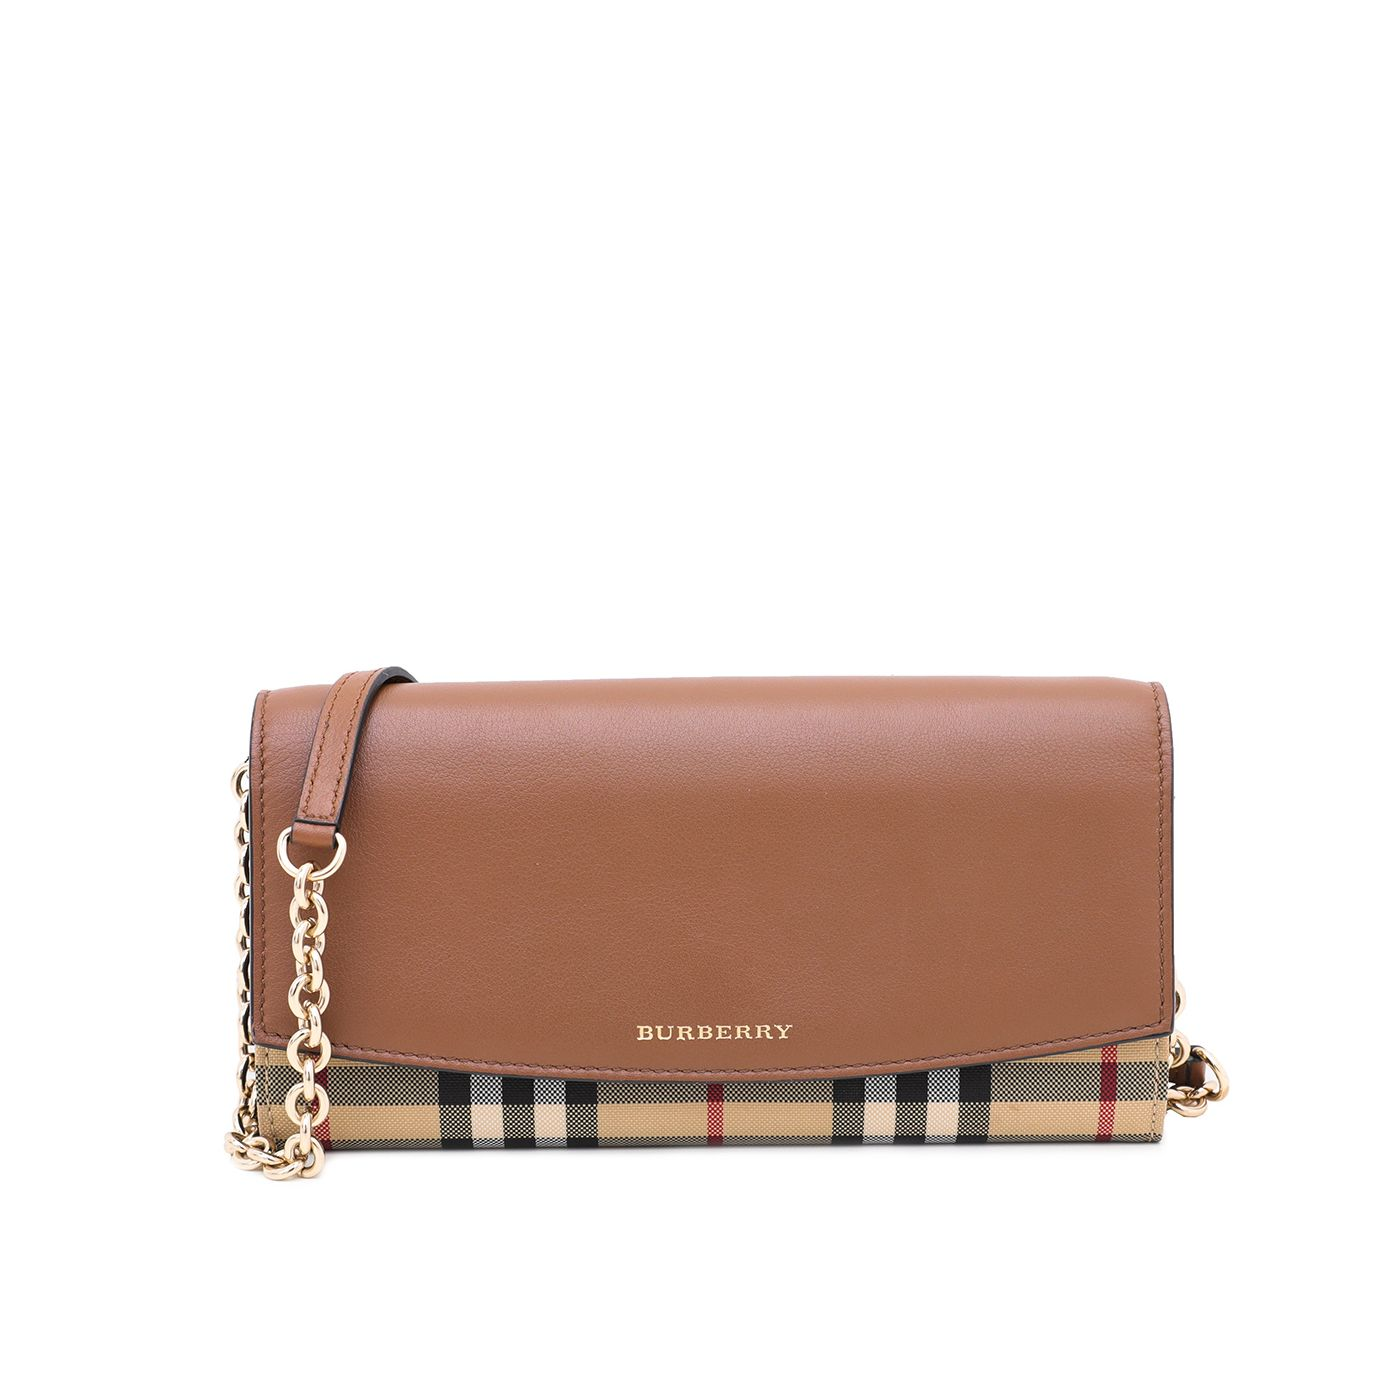 Burberry Brown Checkered Vintage Check Henley WOC